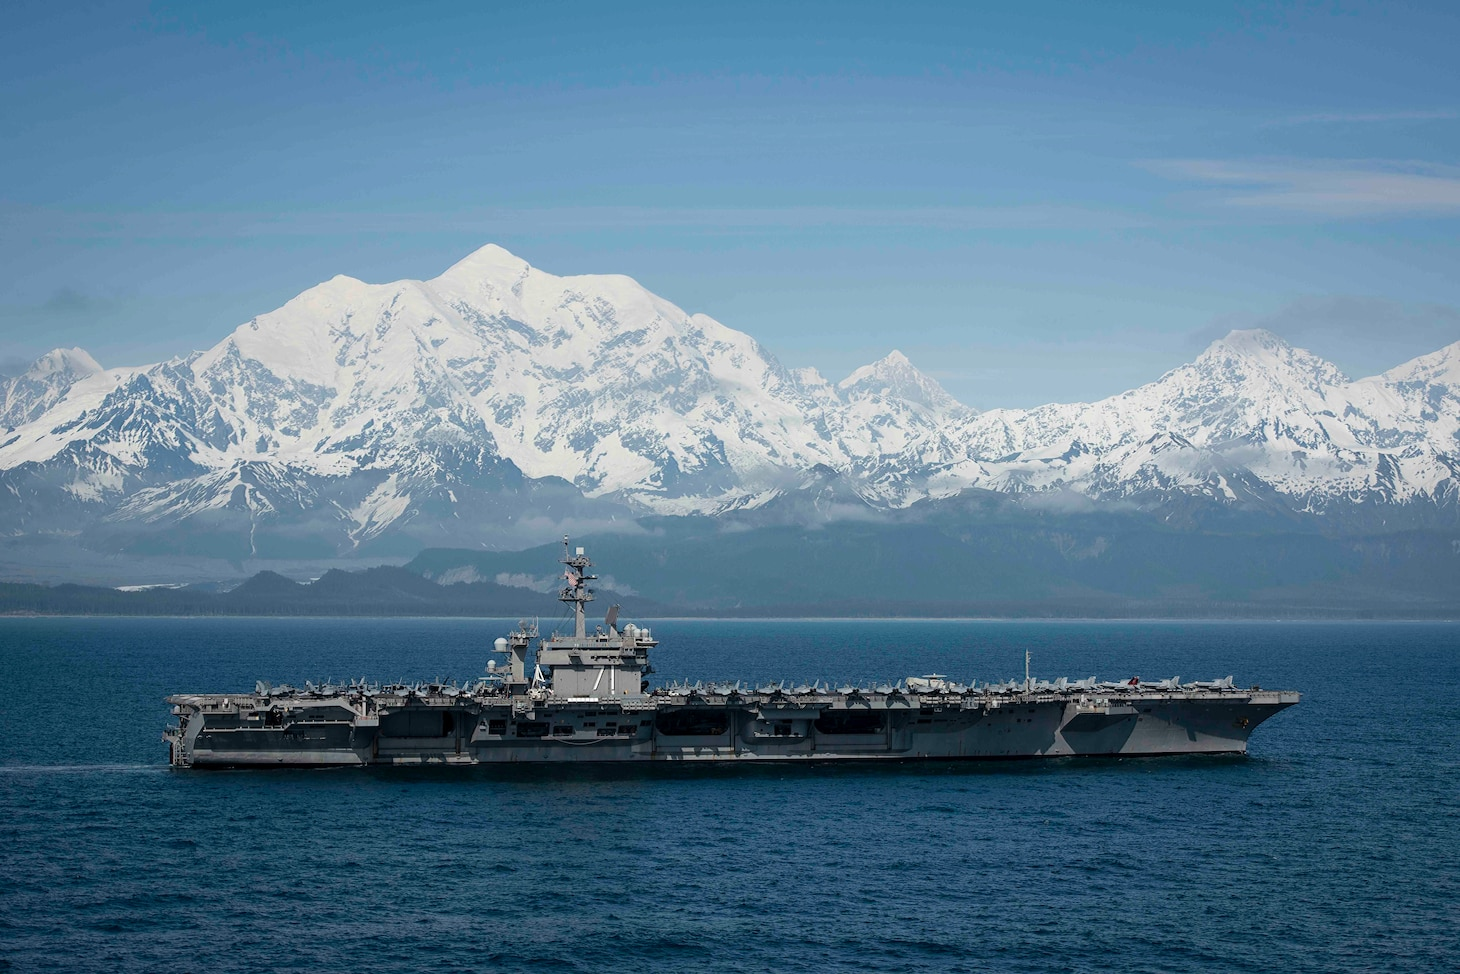 The aircraft carrier USS Theodore Roosevelt (CVN 71) transits the Gulf of Alaska after participating in exercise Northern Edge 2019.